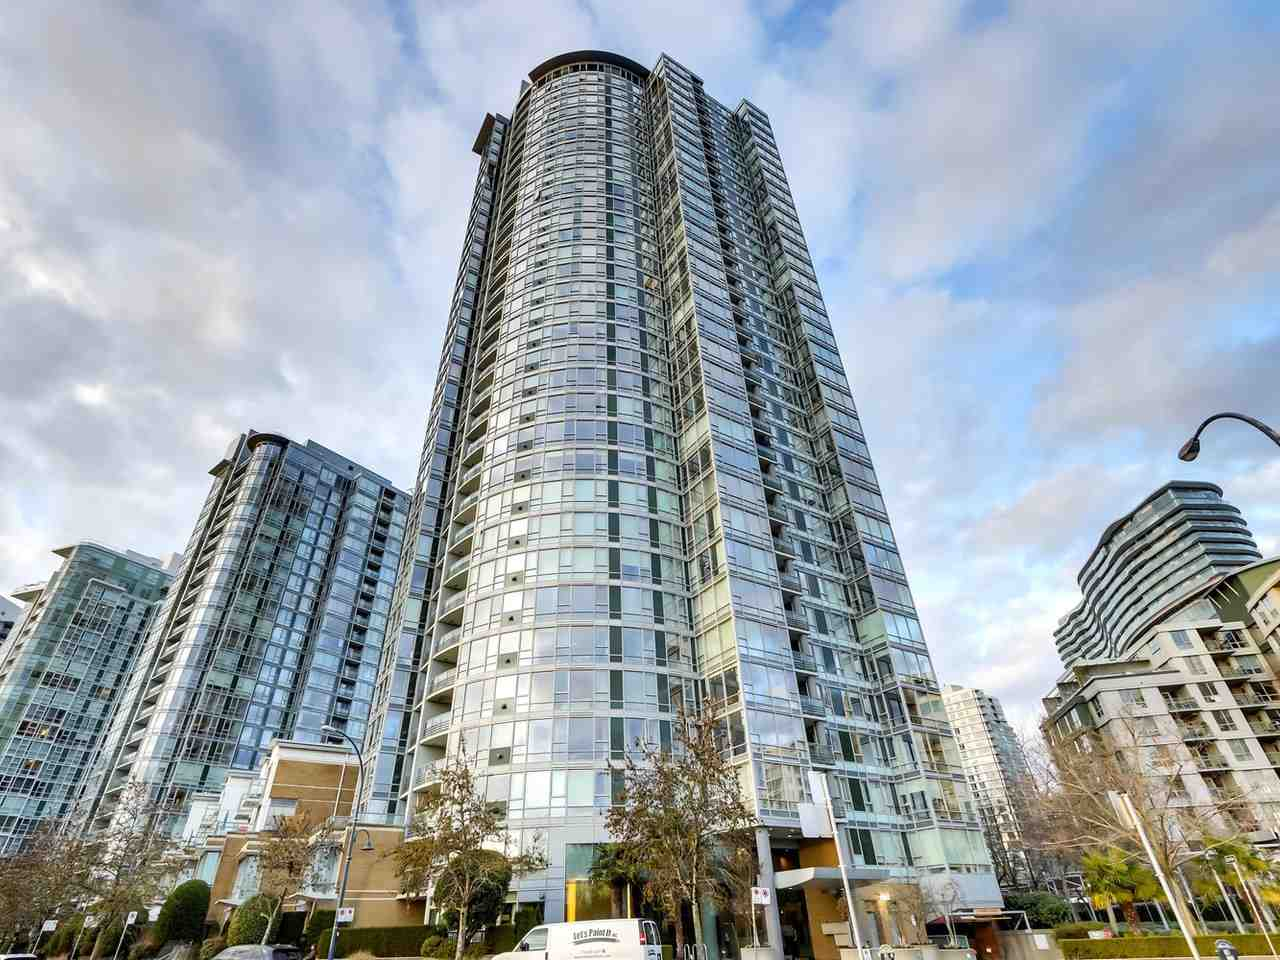 2206 1033 MARINASIDE CRESCENT - Yaletown Apartment/Condo for sale, 2 Bedrooms (R2530454) - #1